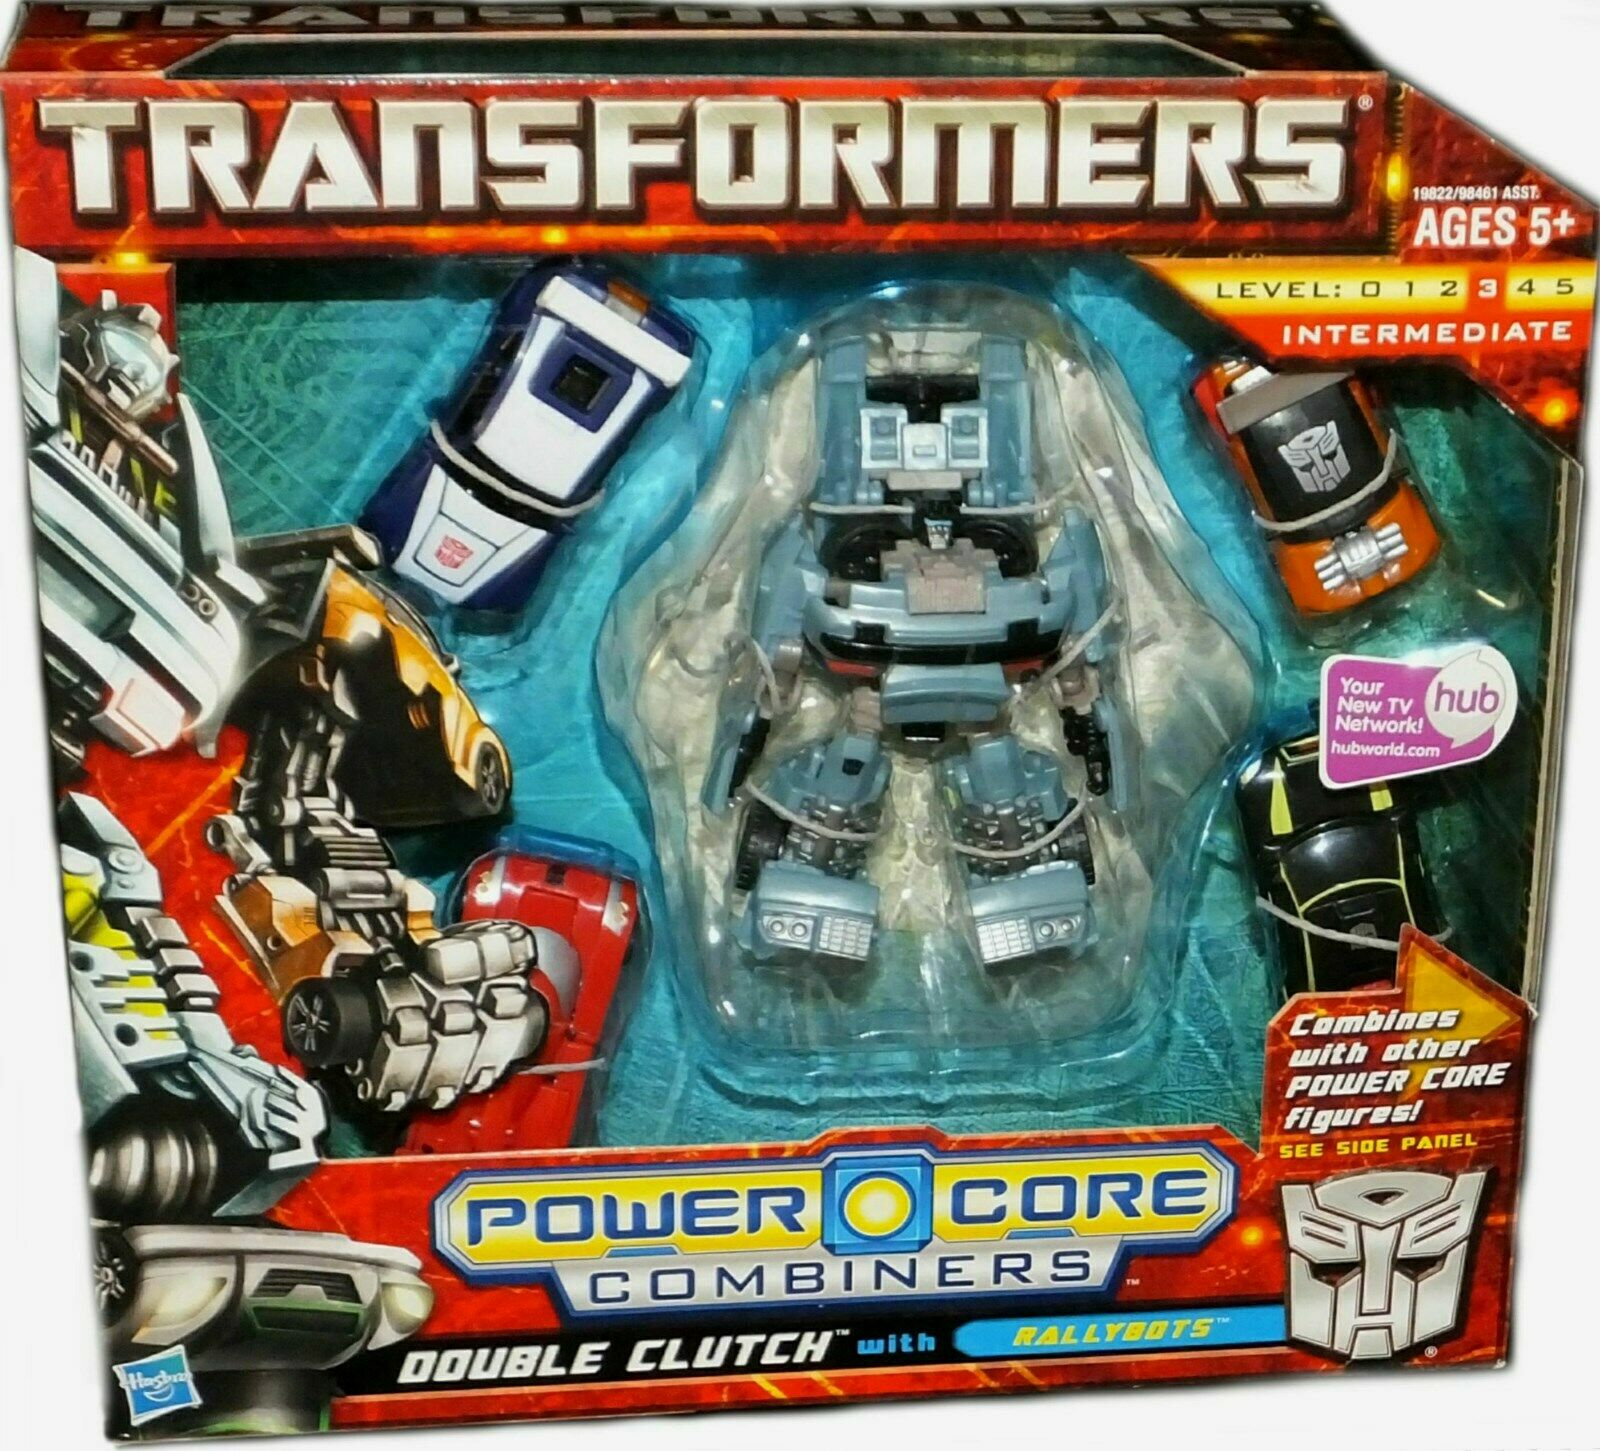 Transformers Power Core Combiners Double Clutch w Rallybots Factory Sealed New